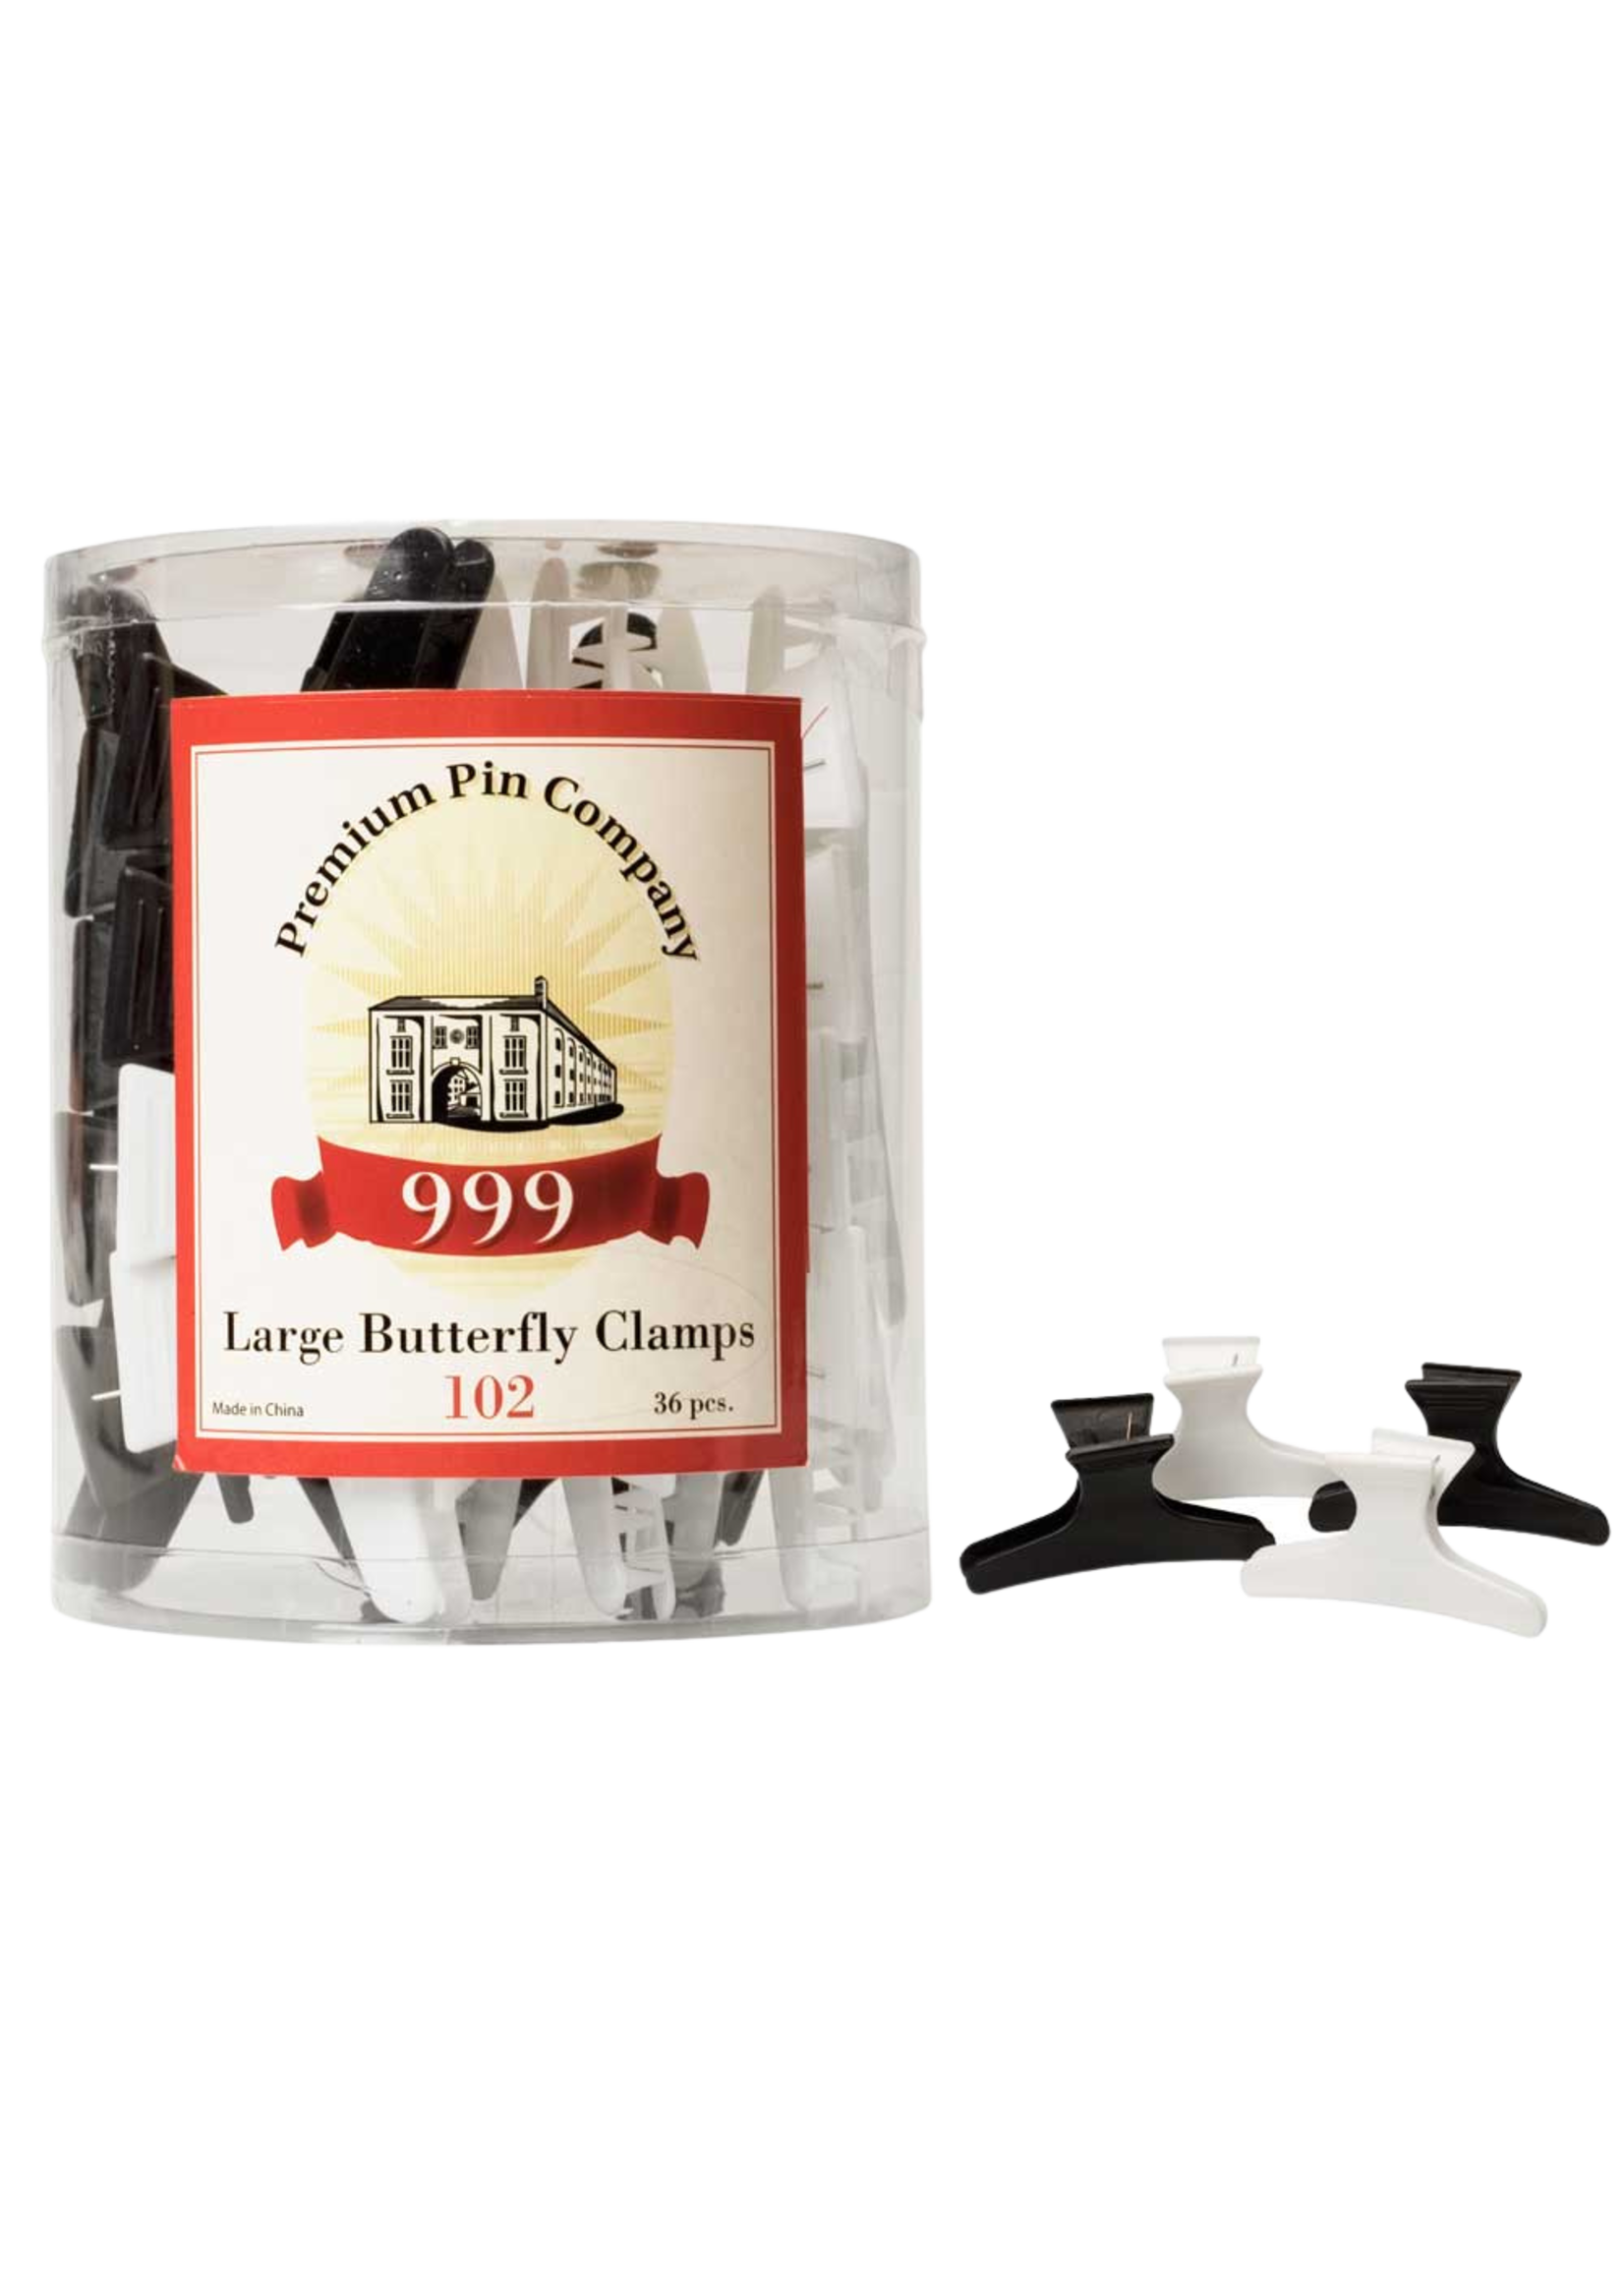 999 Premium Pin Company 999 Butterfly Clamps Large Black & White Tub 36pcs